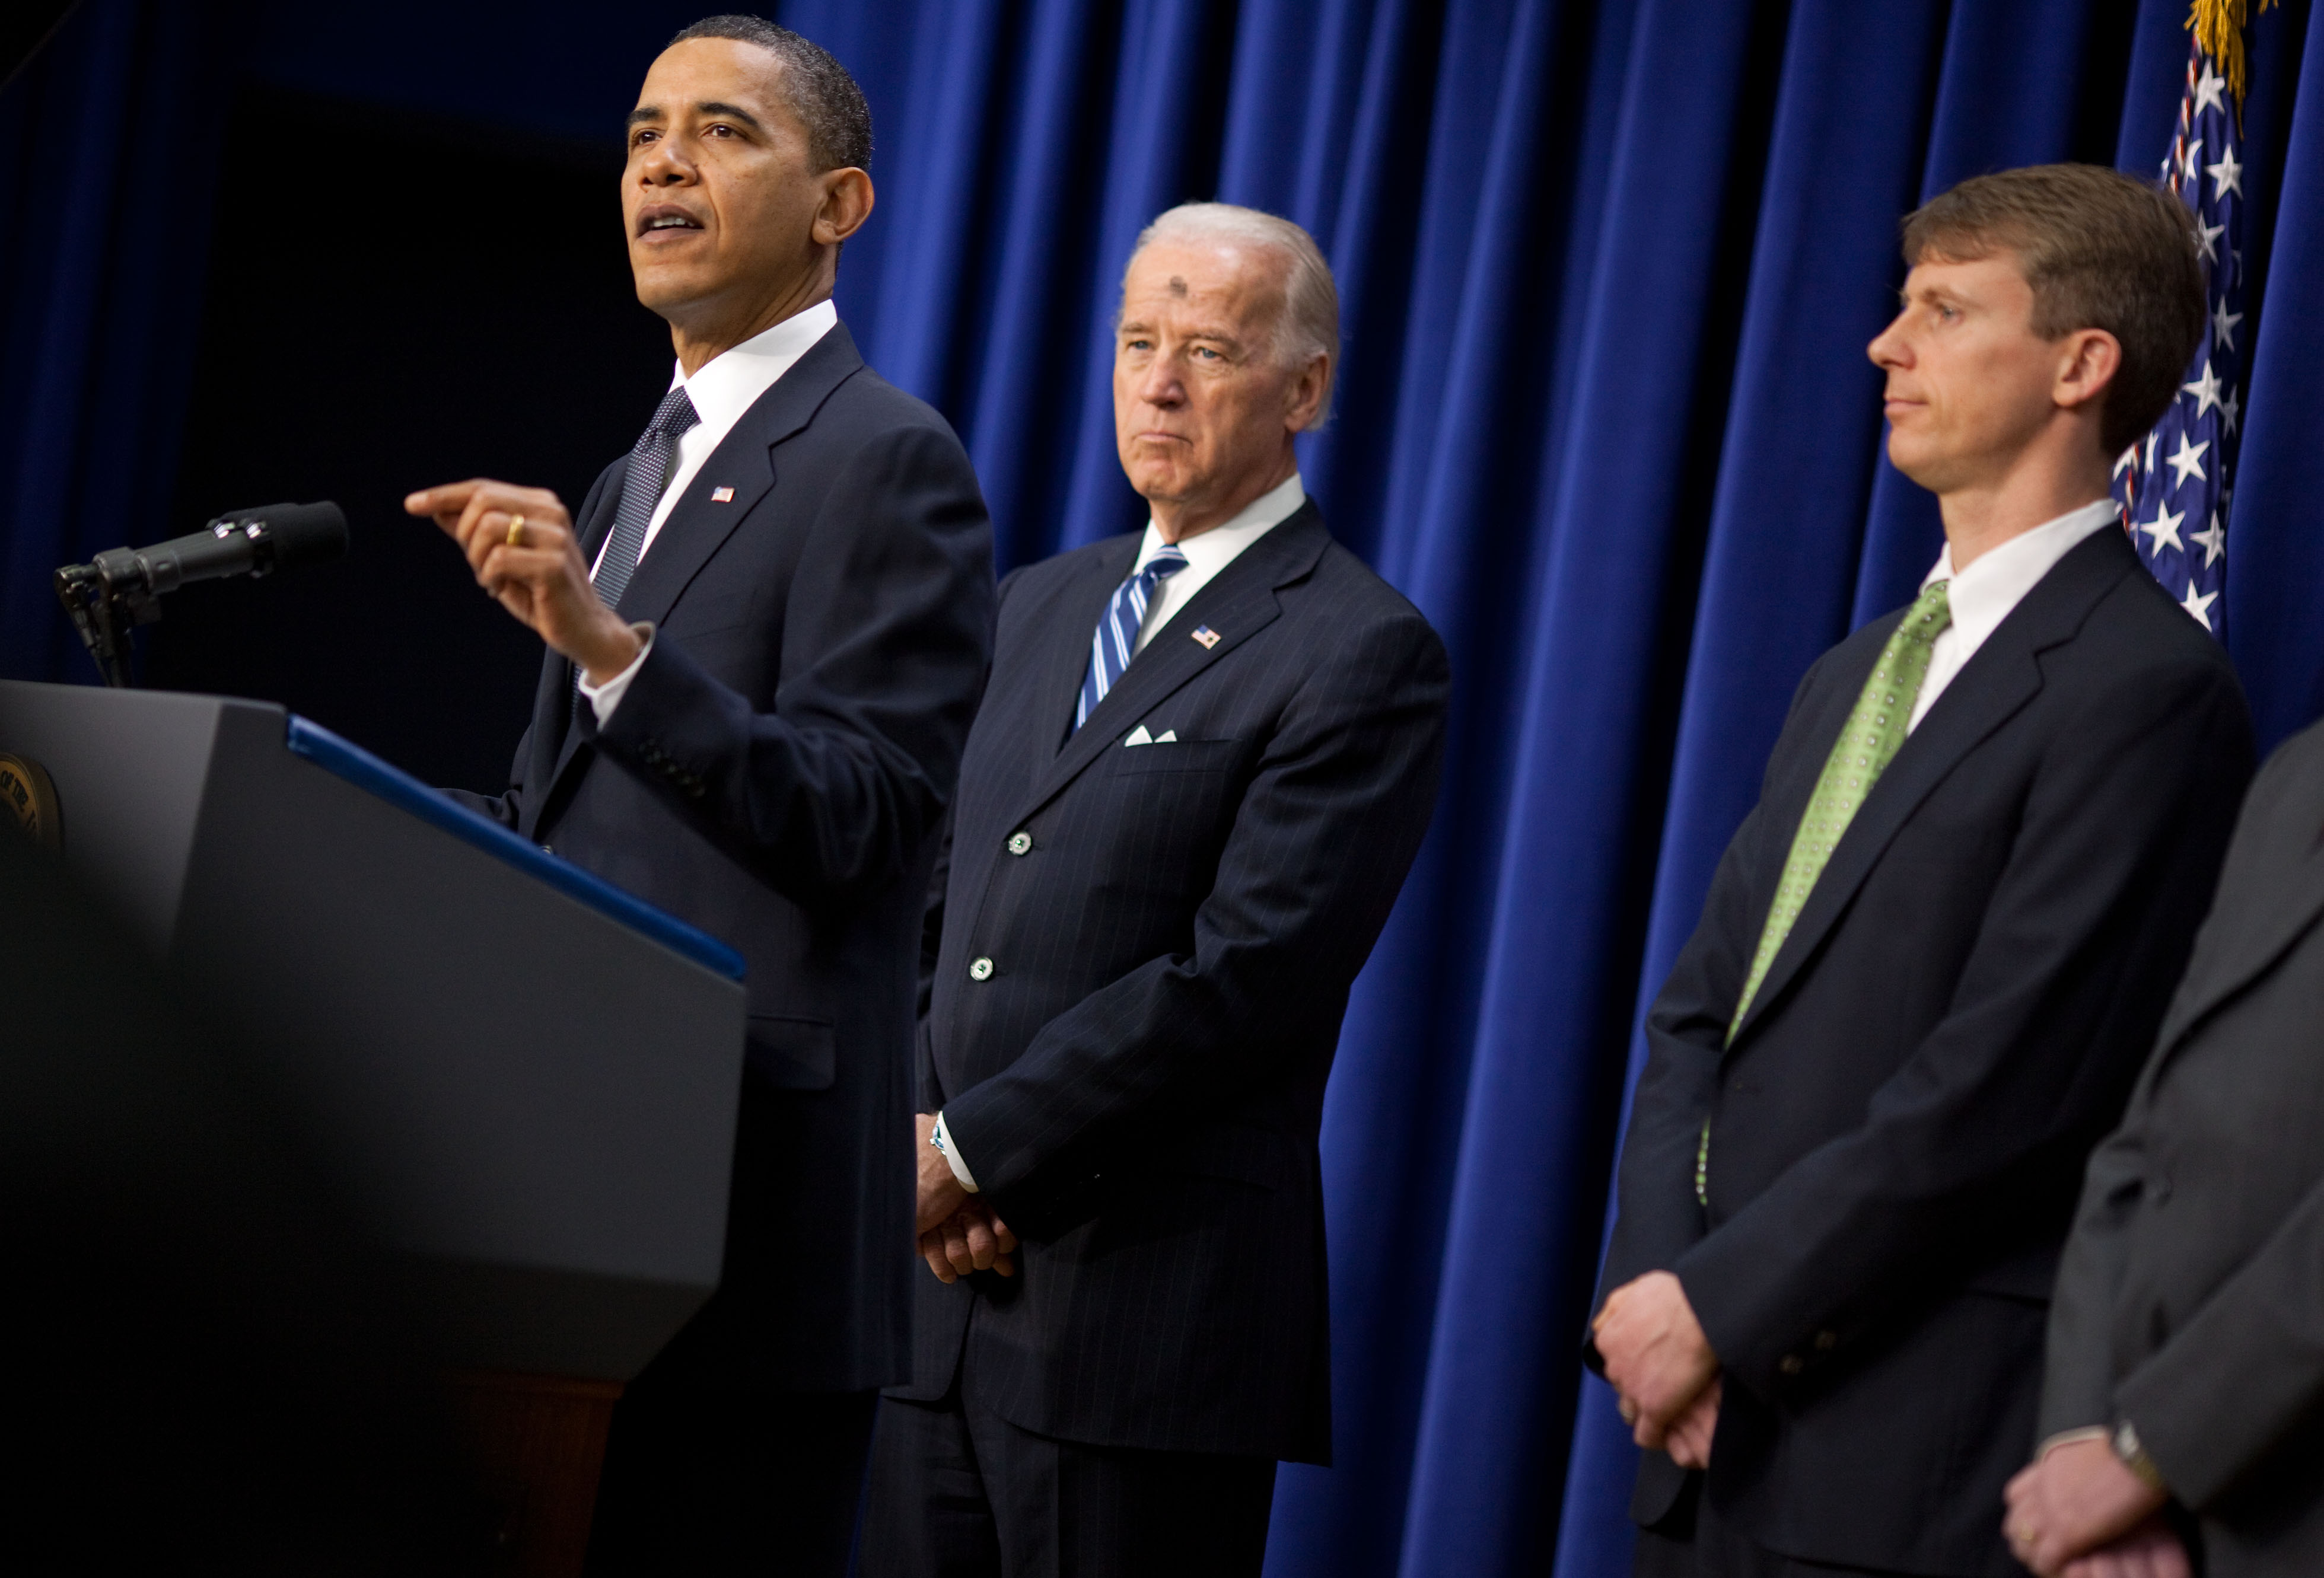 The President, Vice President, and Small Business Owners Mark the First Anniversary of the Recovery Act